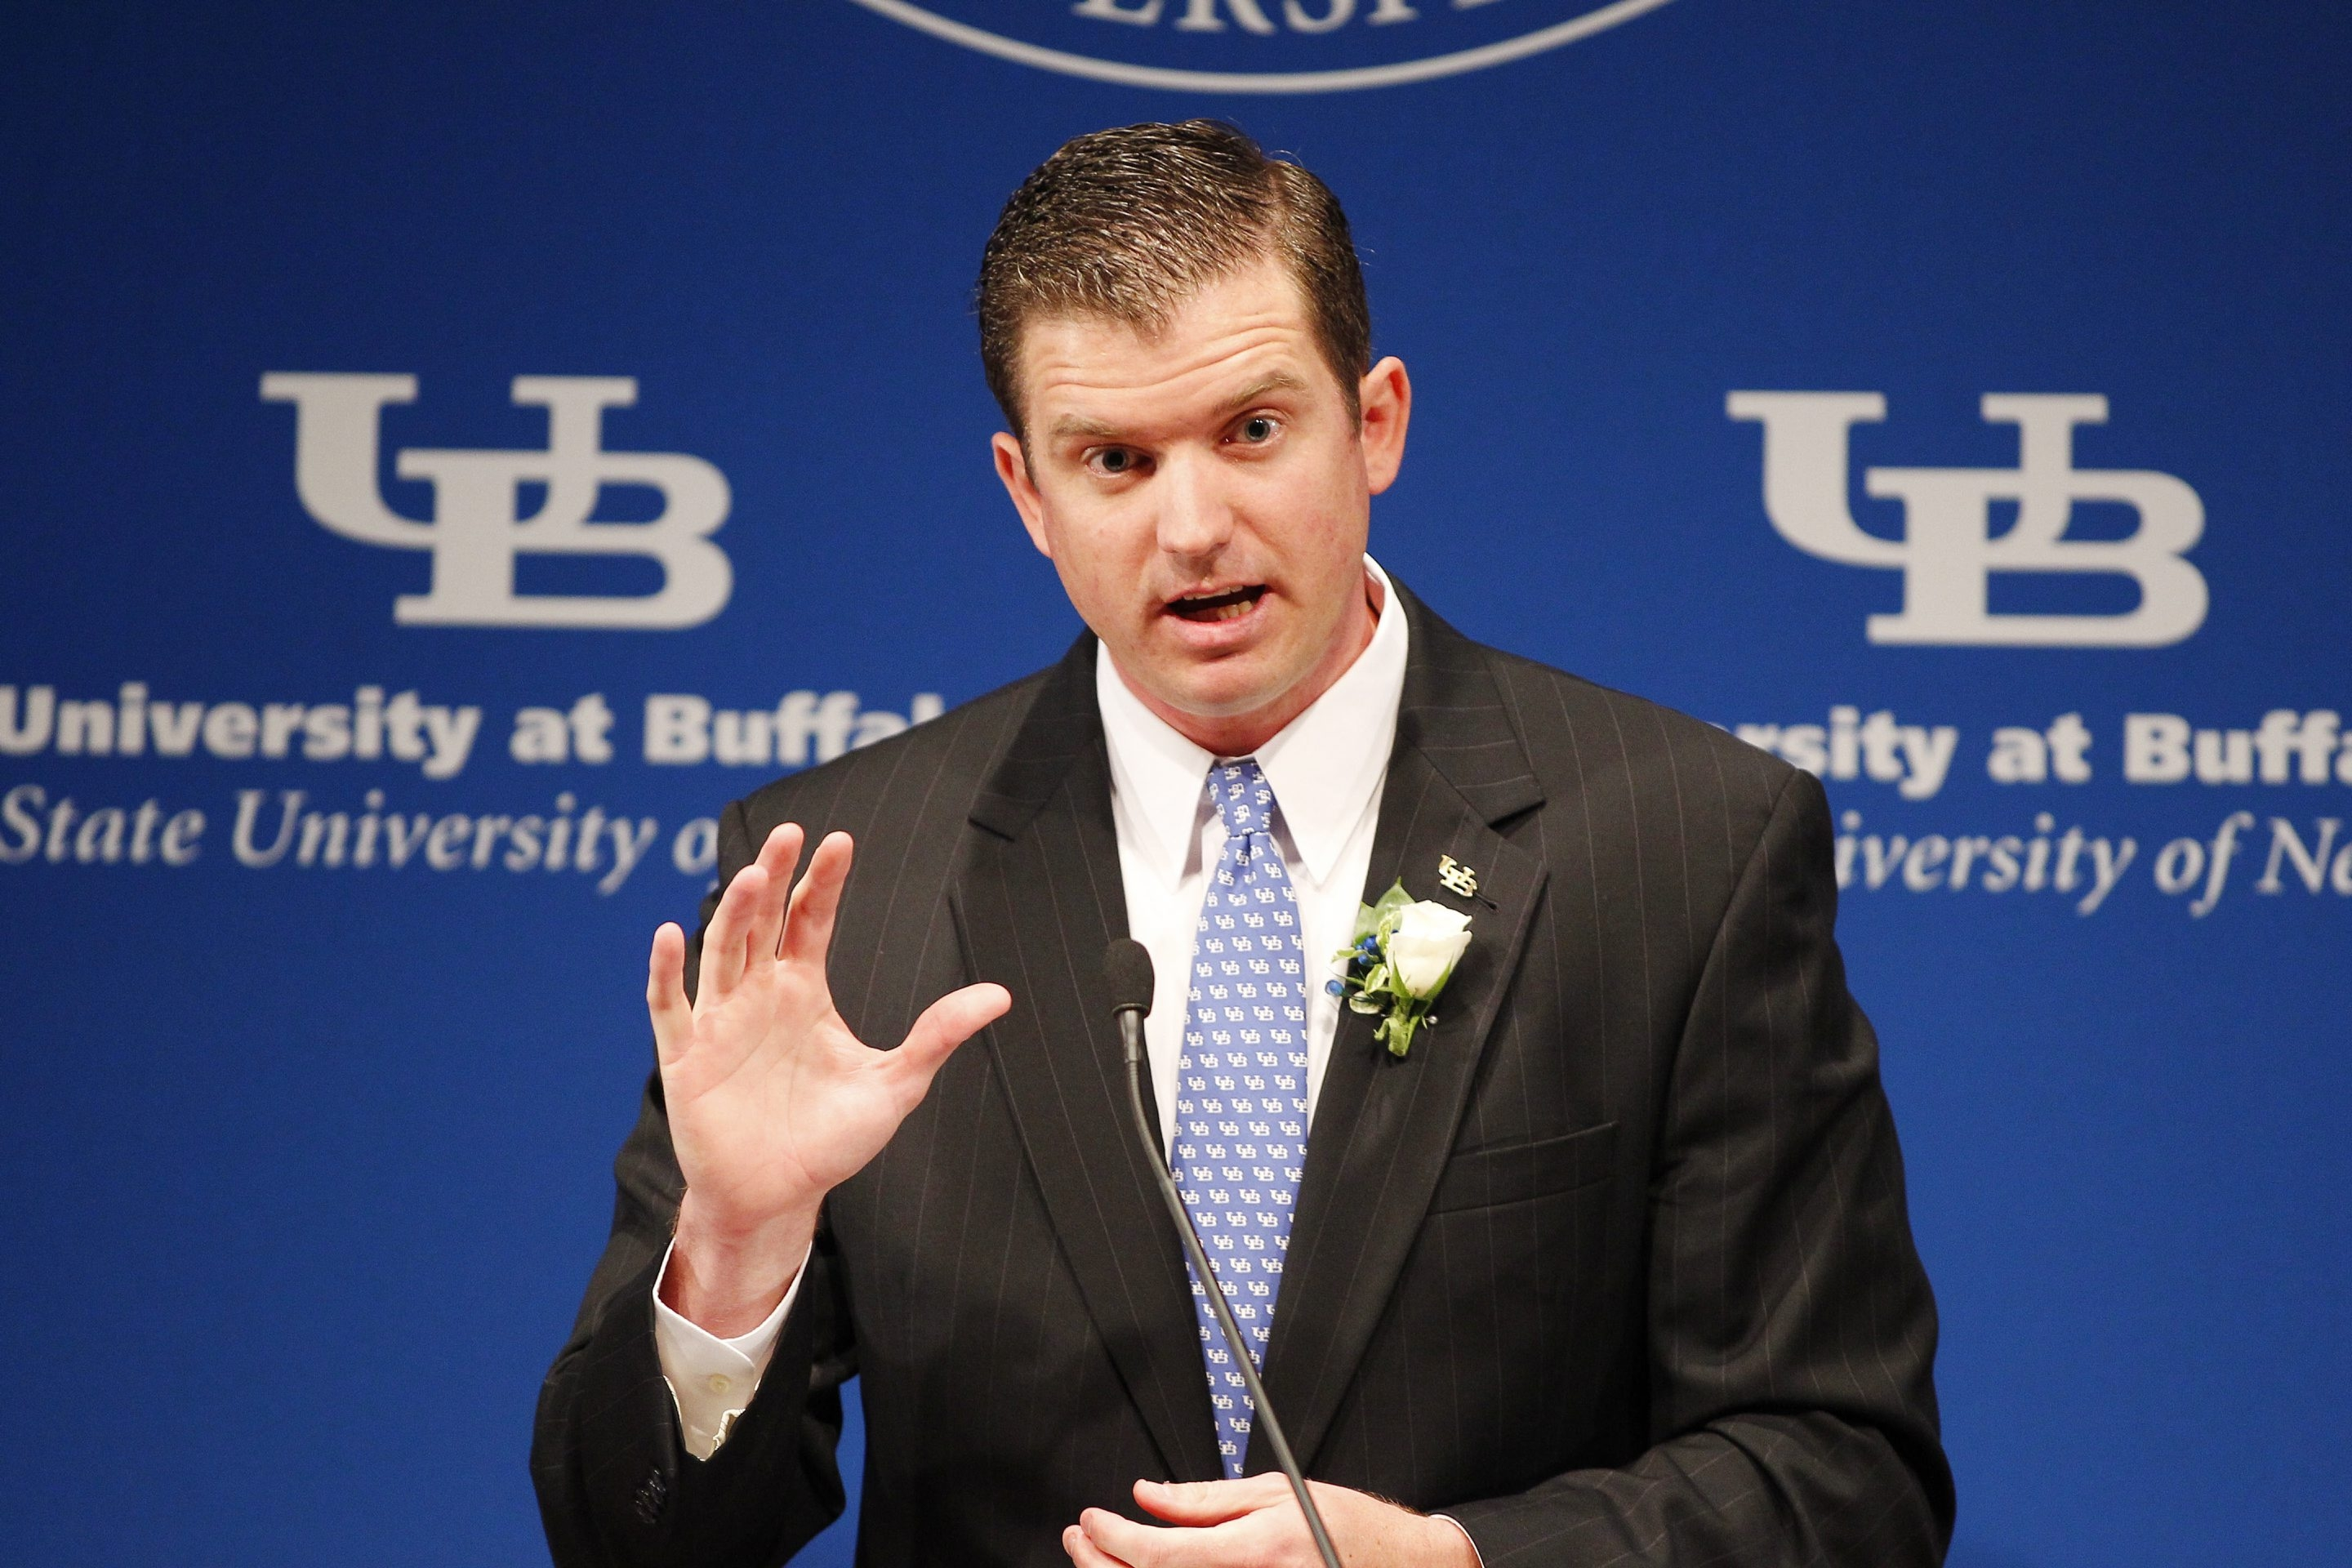 UB athletic director Danny White says the new playoff format puts the onus on  the MAC to be competitive.